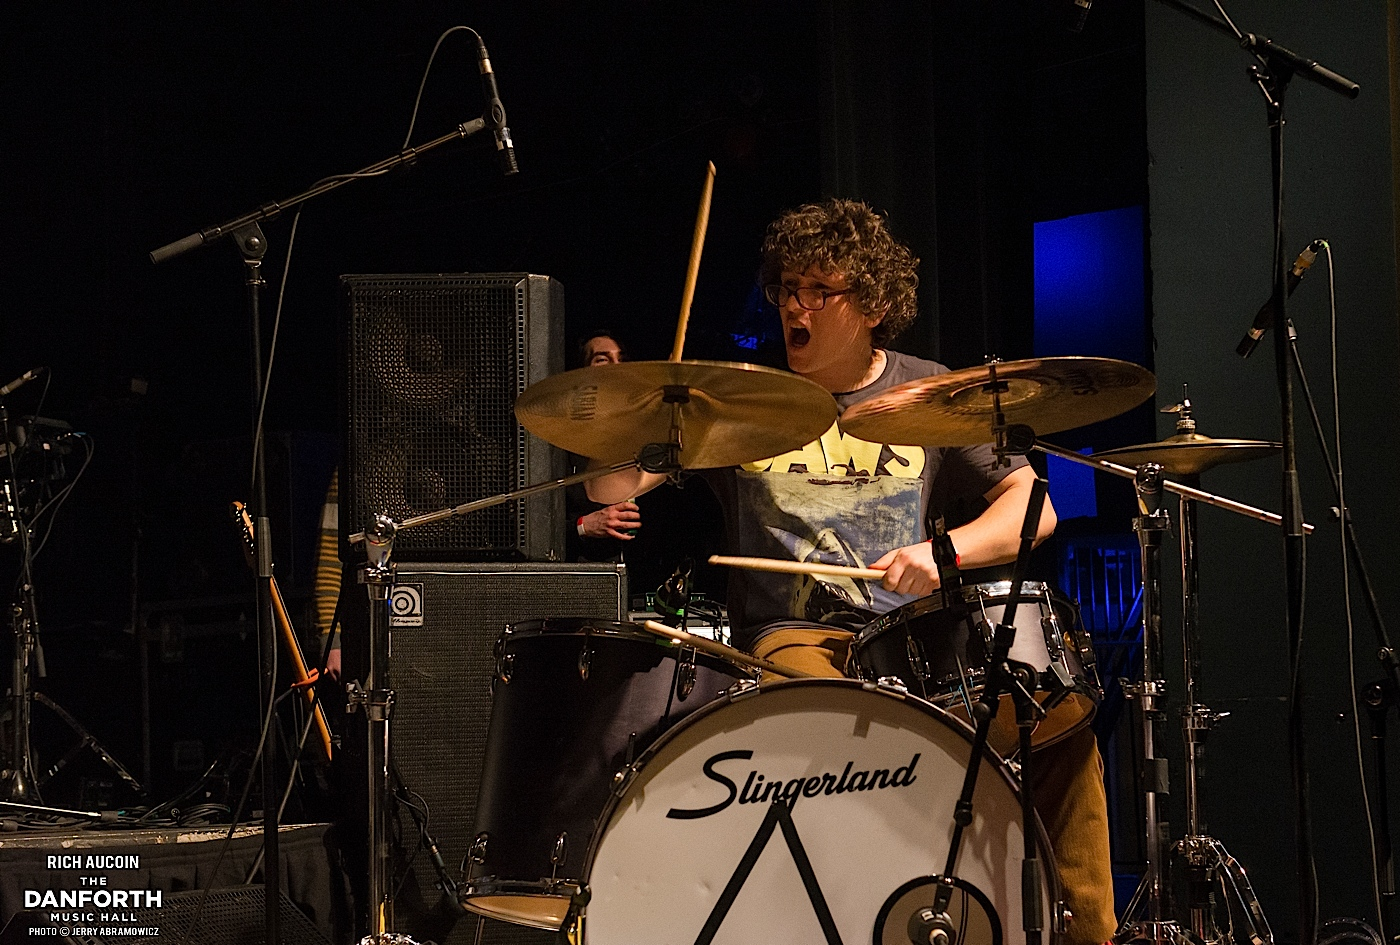 RICH AUCOIN plays at The Danforth Music Hall.